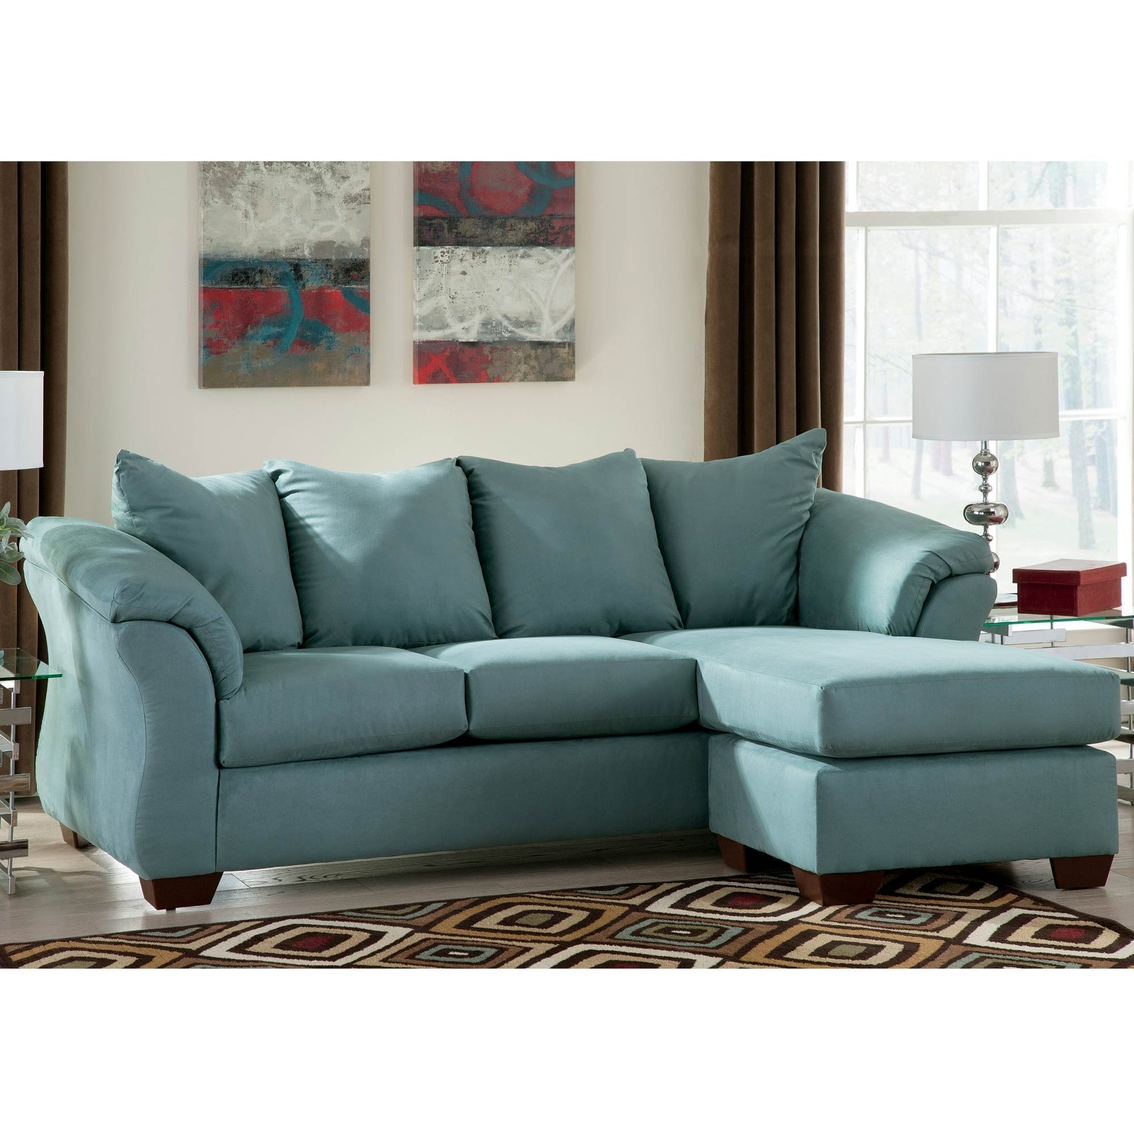 Signature Design By Ashley Darcy Sofa Chaise Sky